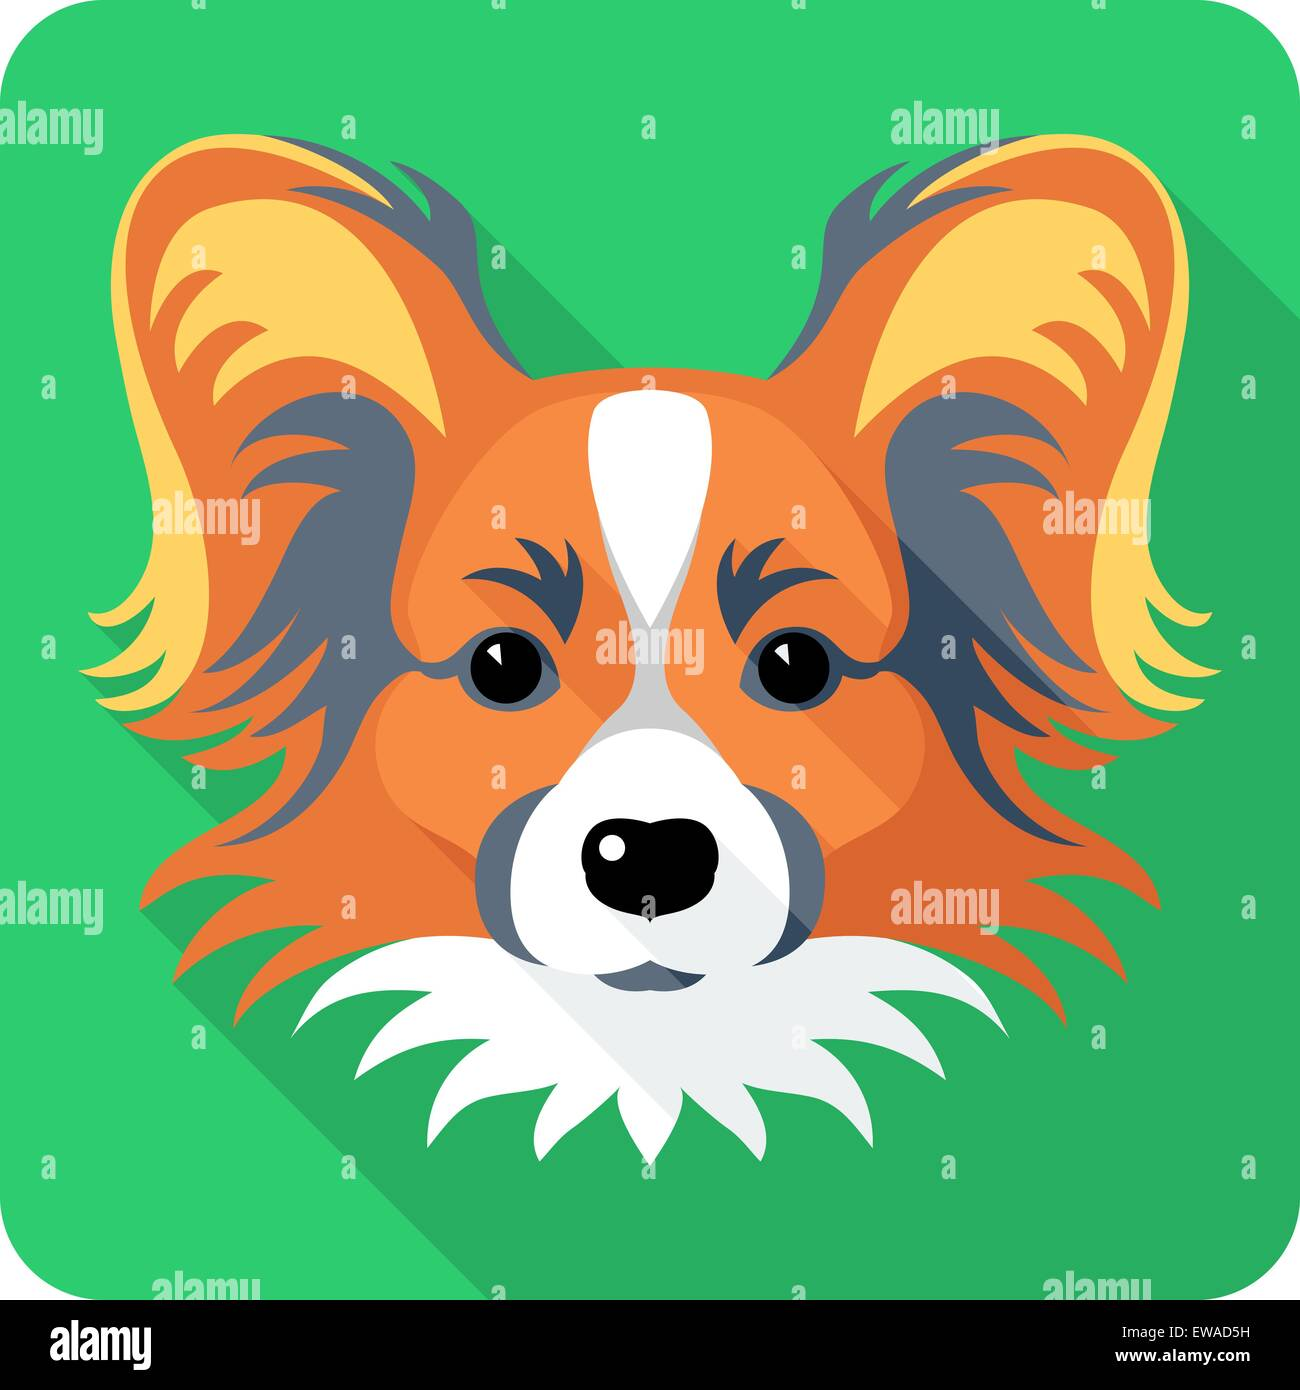 dog Chinese Crested icon flat design - Stock Vector